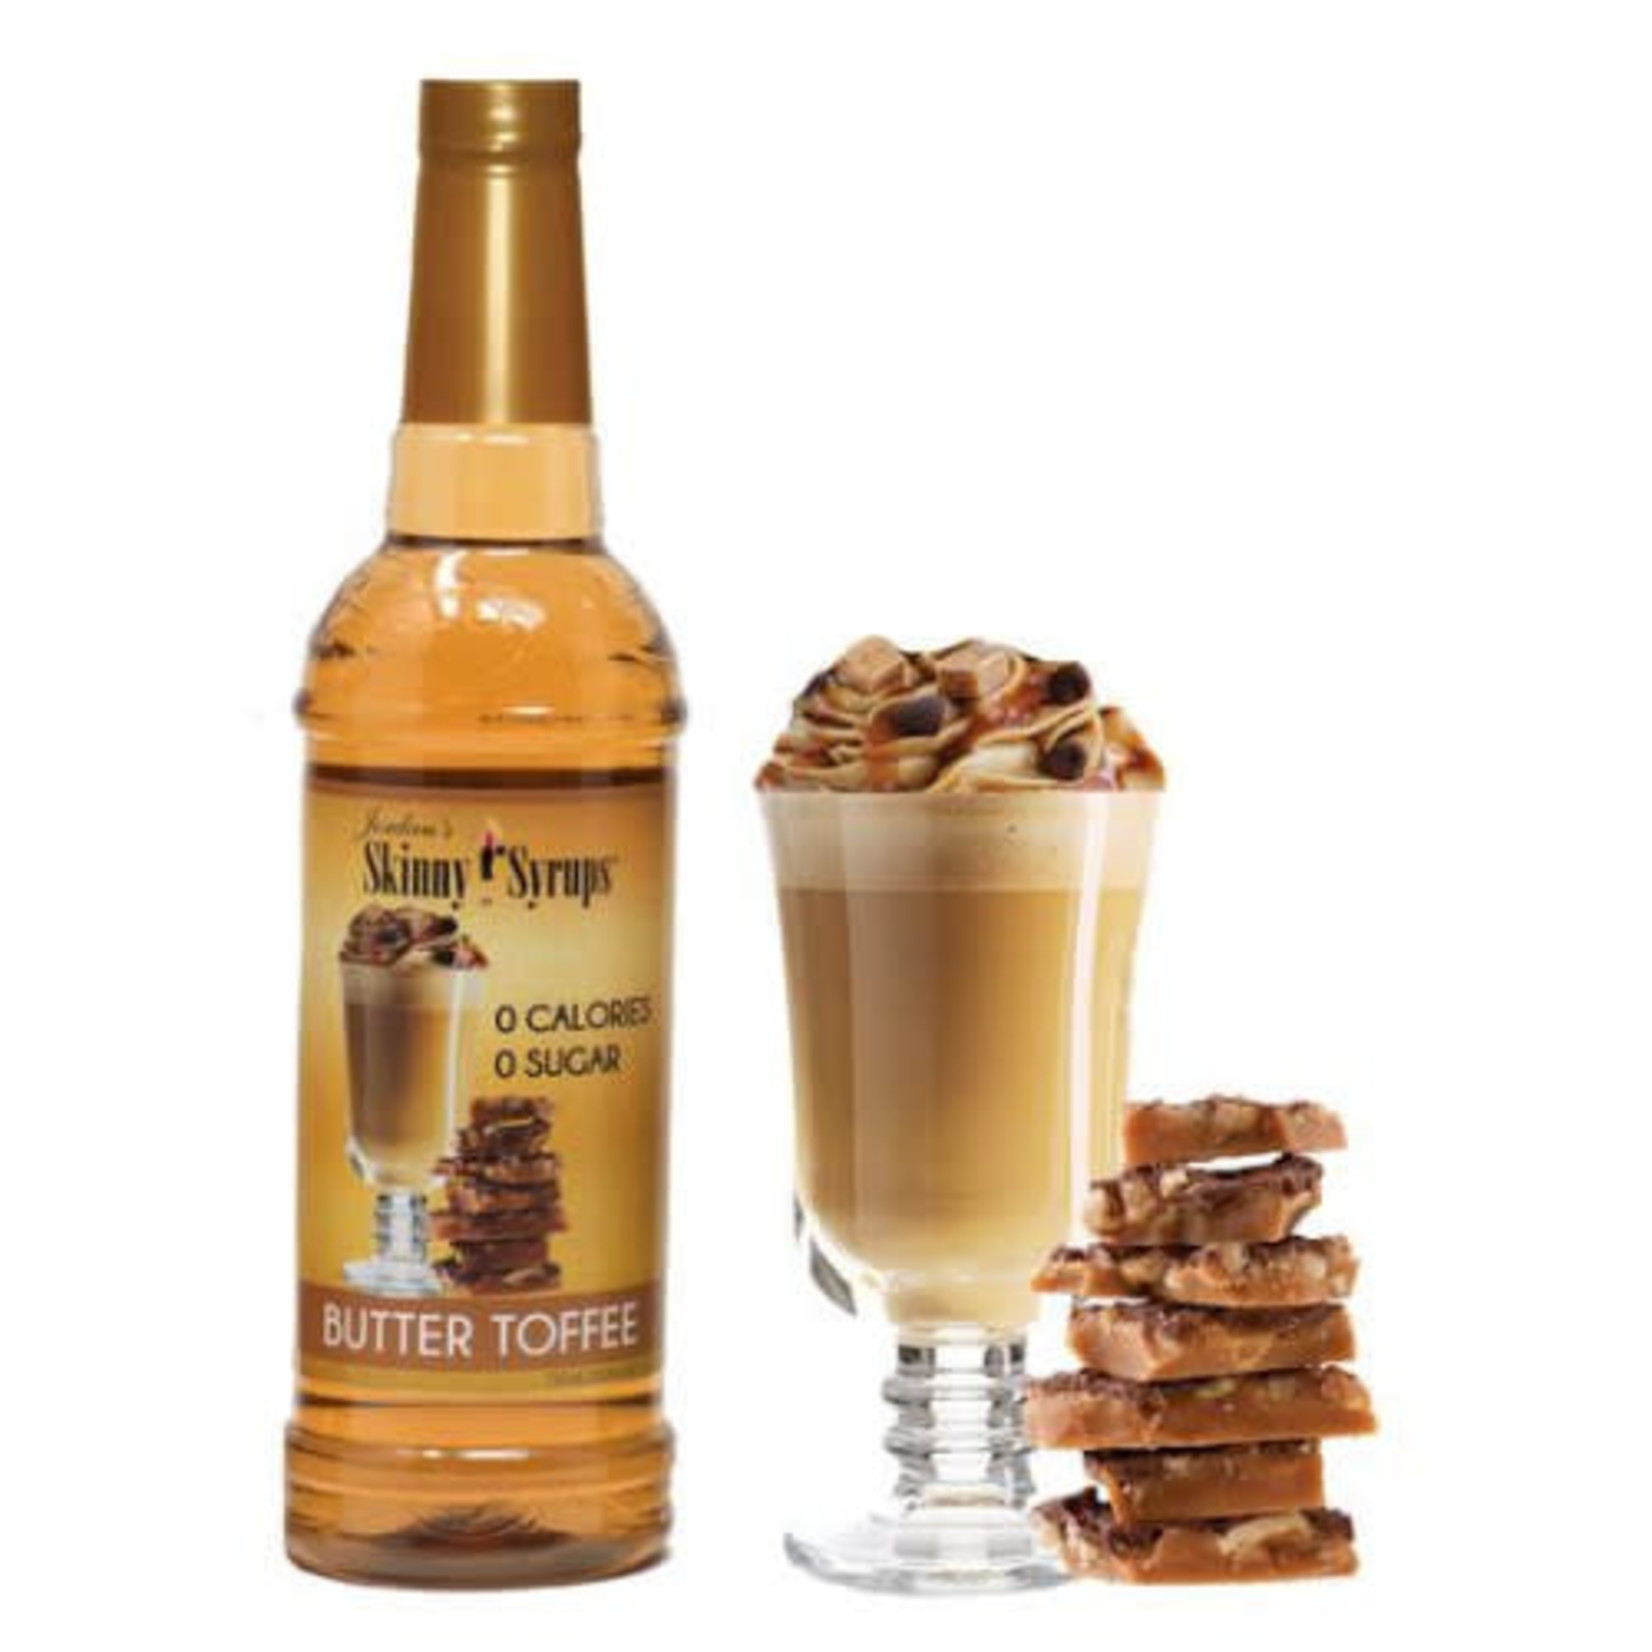 Skinny Syrups Skinny Syrups - Butter Toffee 750ml